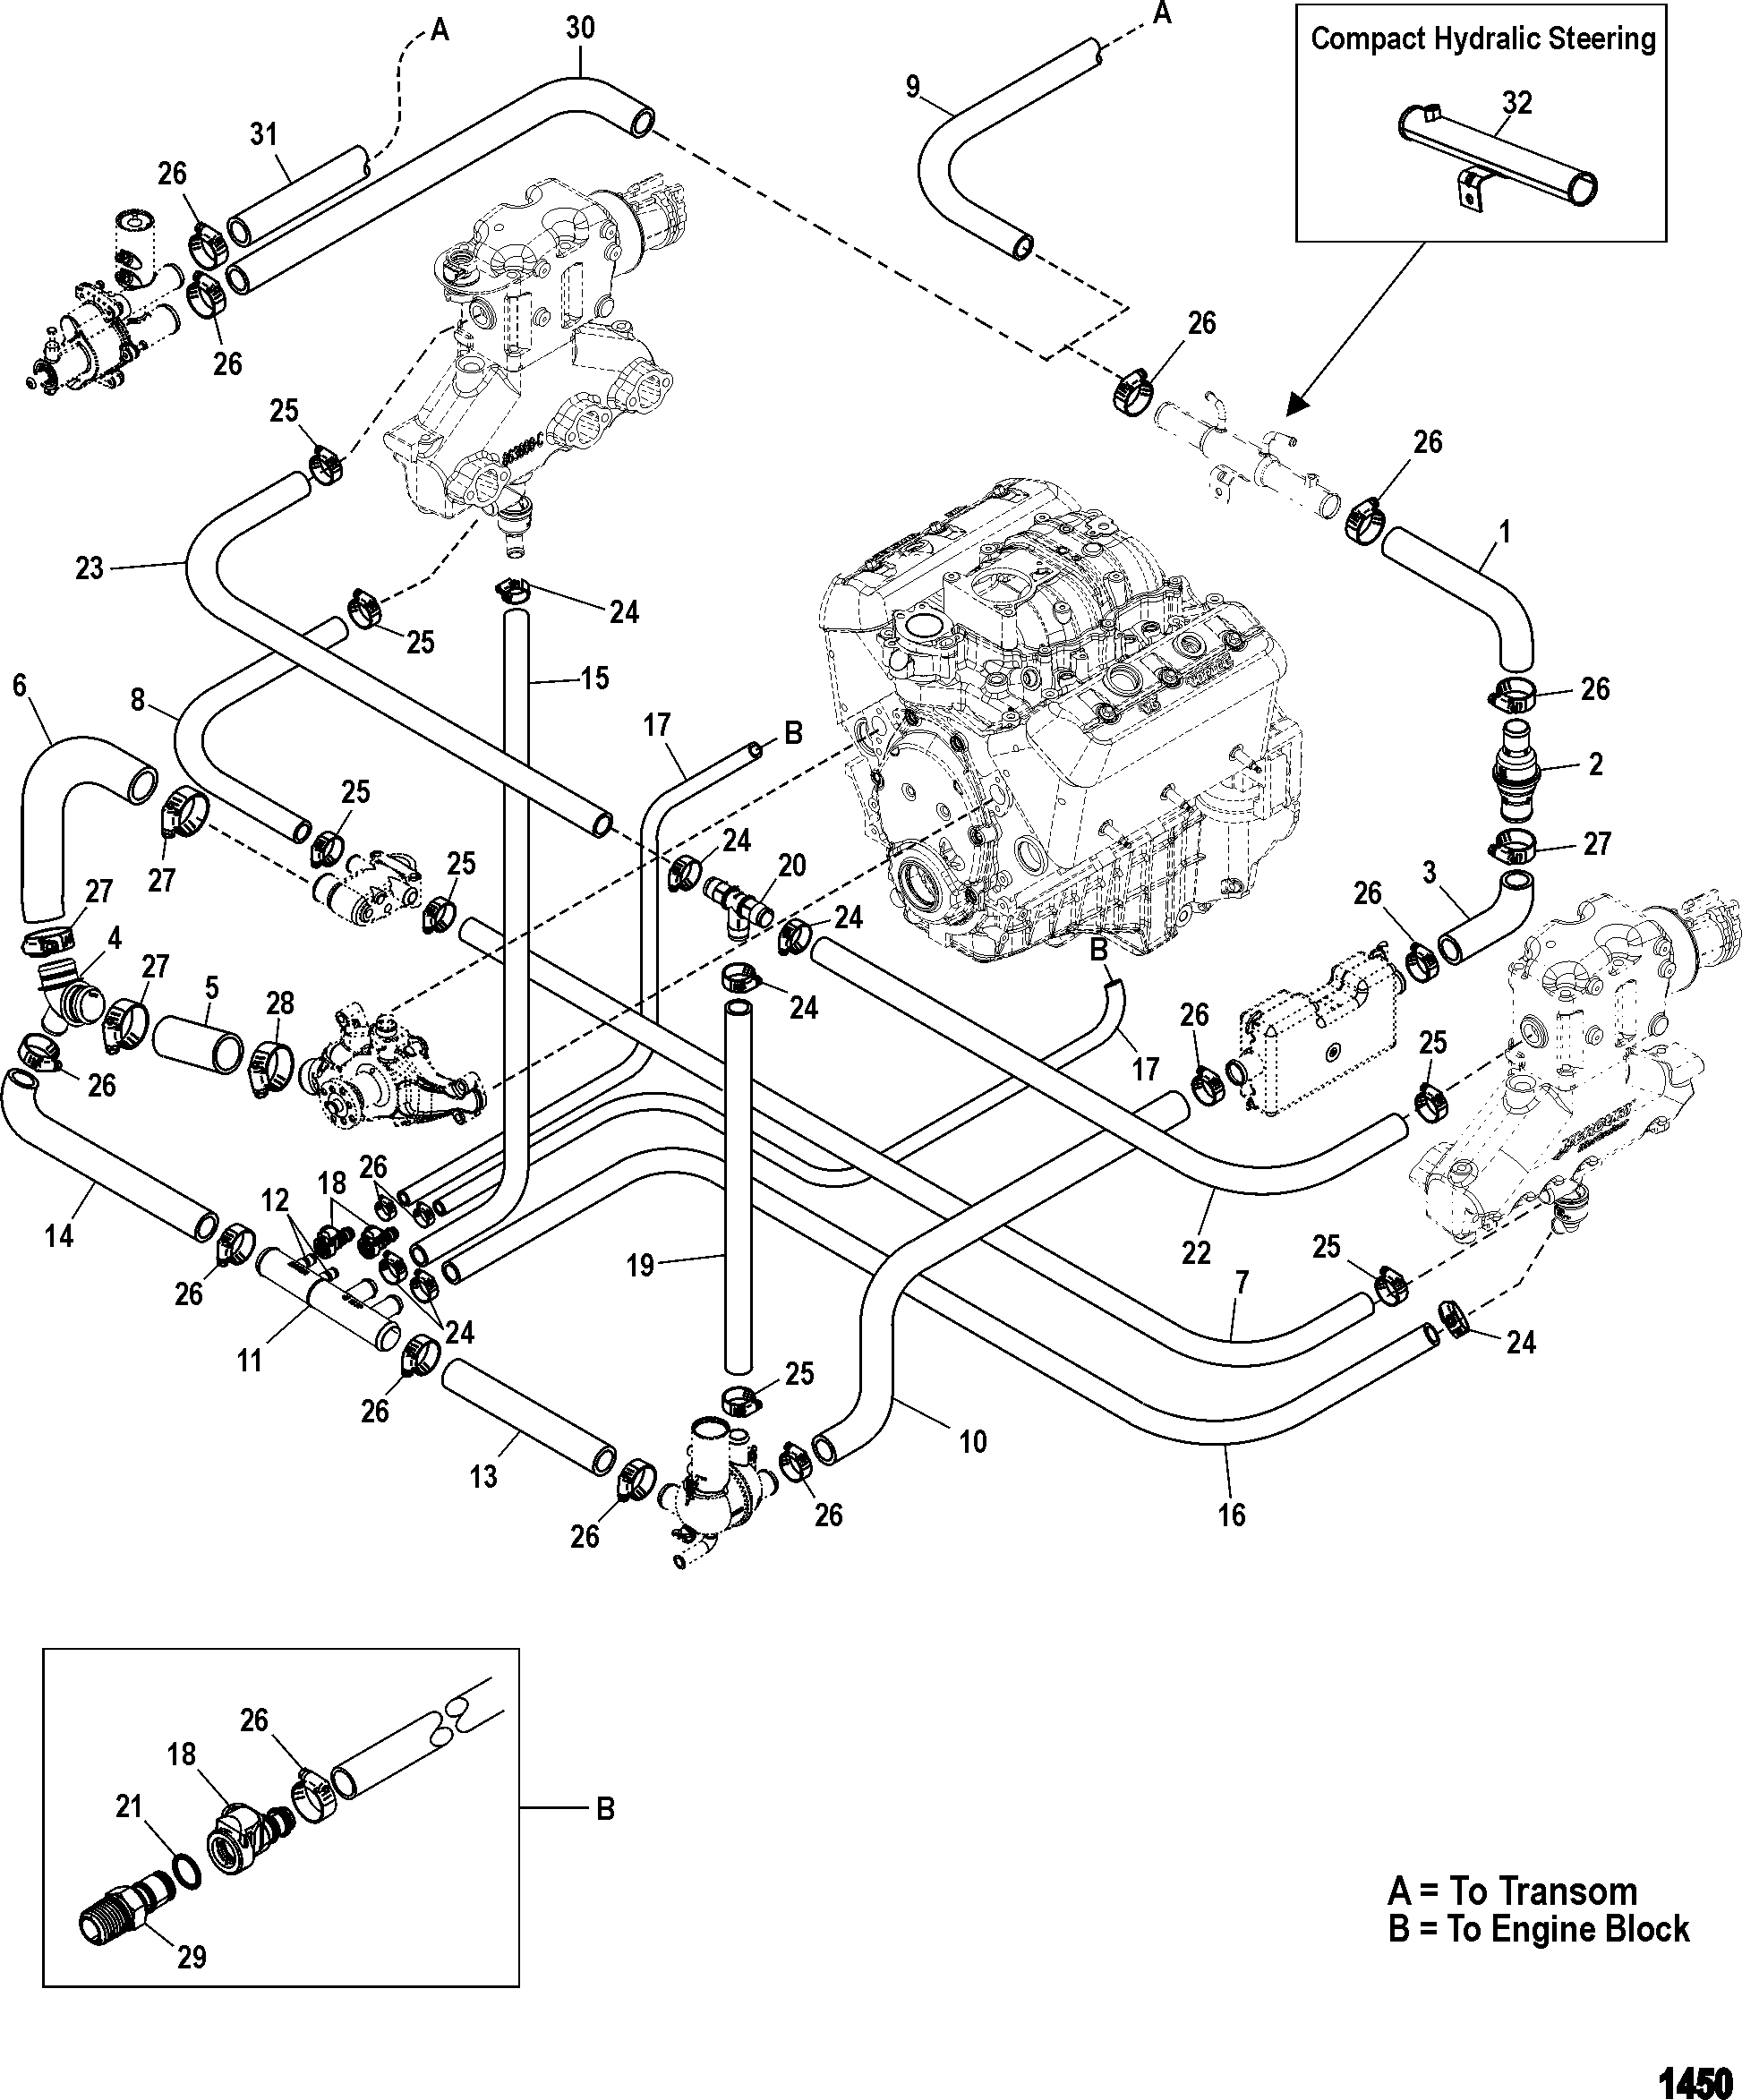 volvo marine wiring diagram volvo wiring diagrams instructions rh ww w freeautoresponder co 5.7 Mercruiser Engine Wiring Diagram Mercruiser Shift Interrupter Switch Wiring Diagram